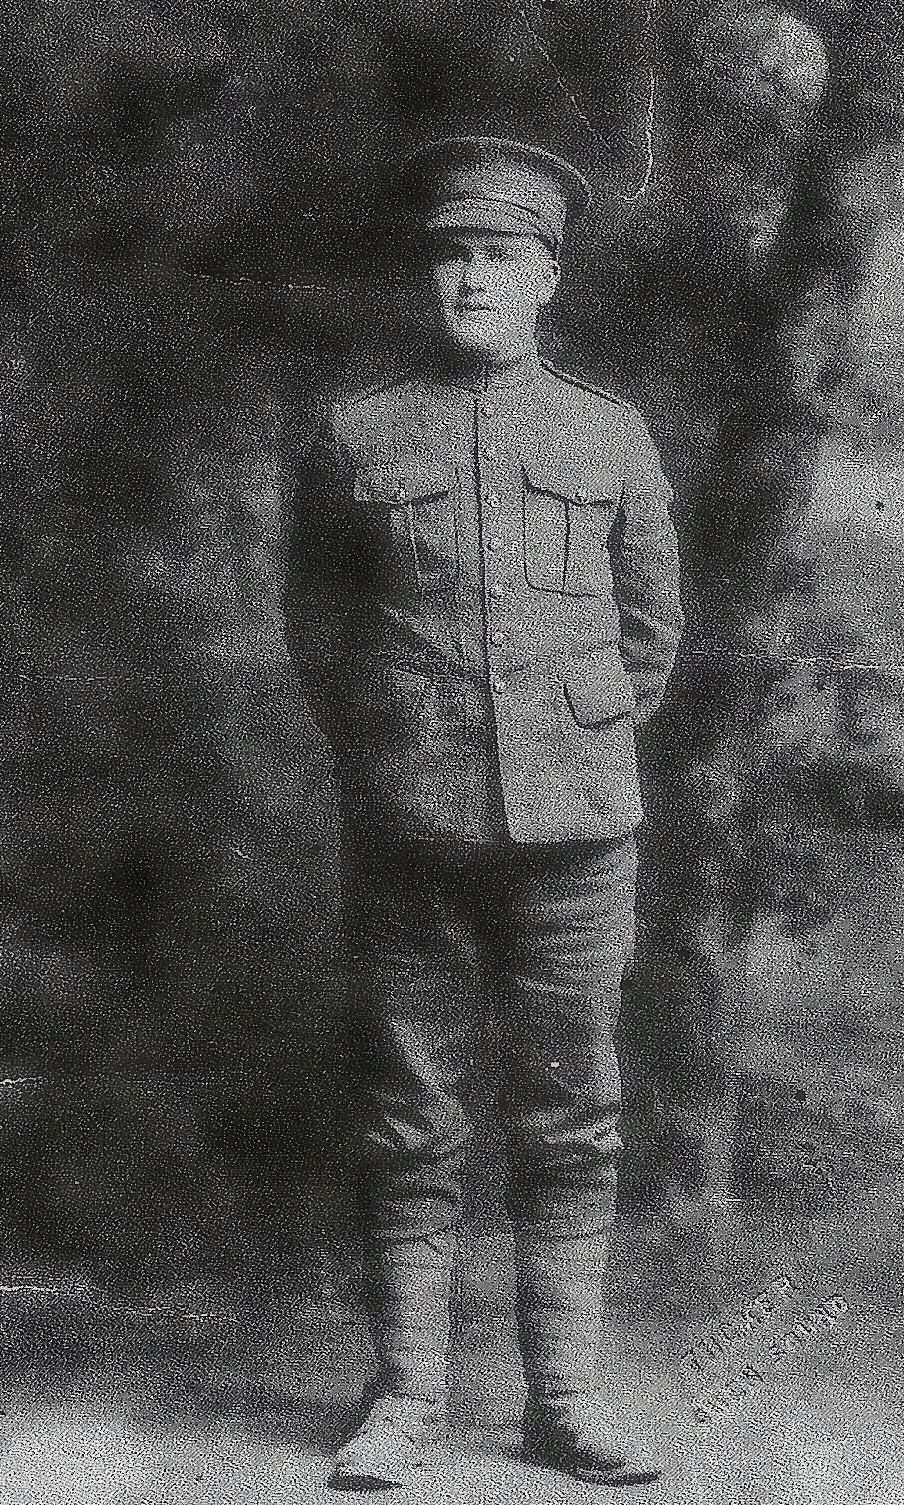 Photo of William Earl Foster